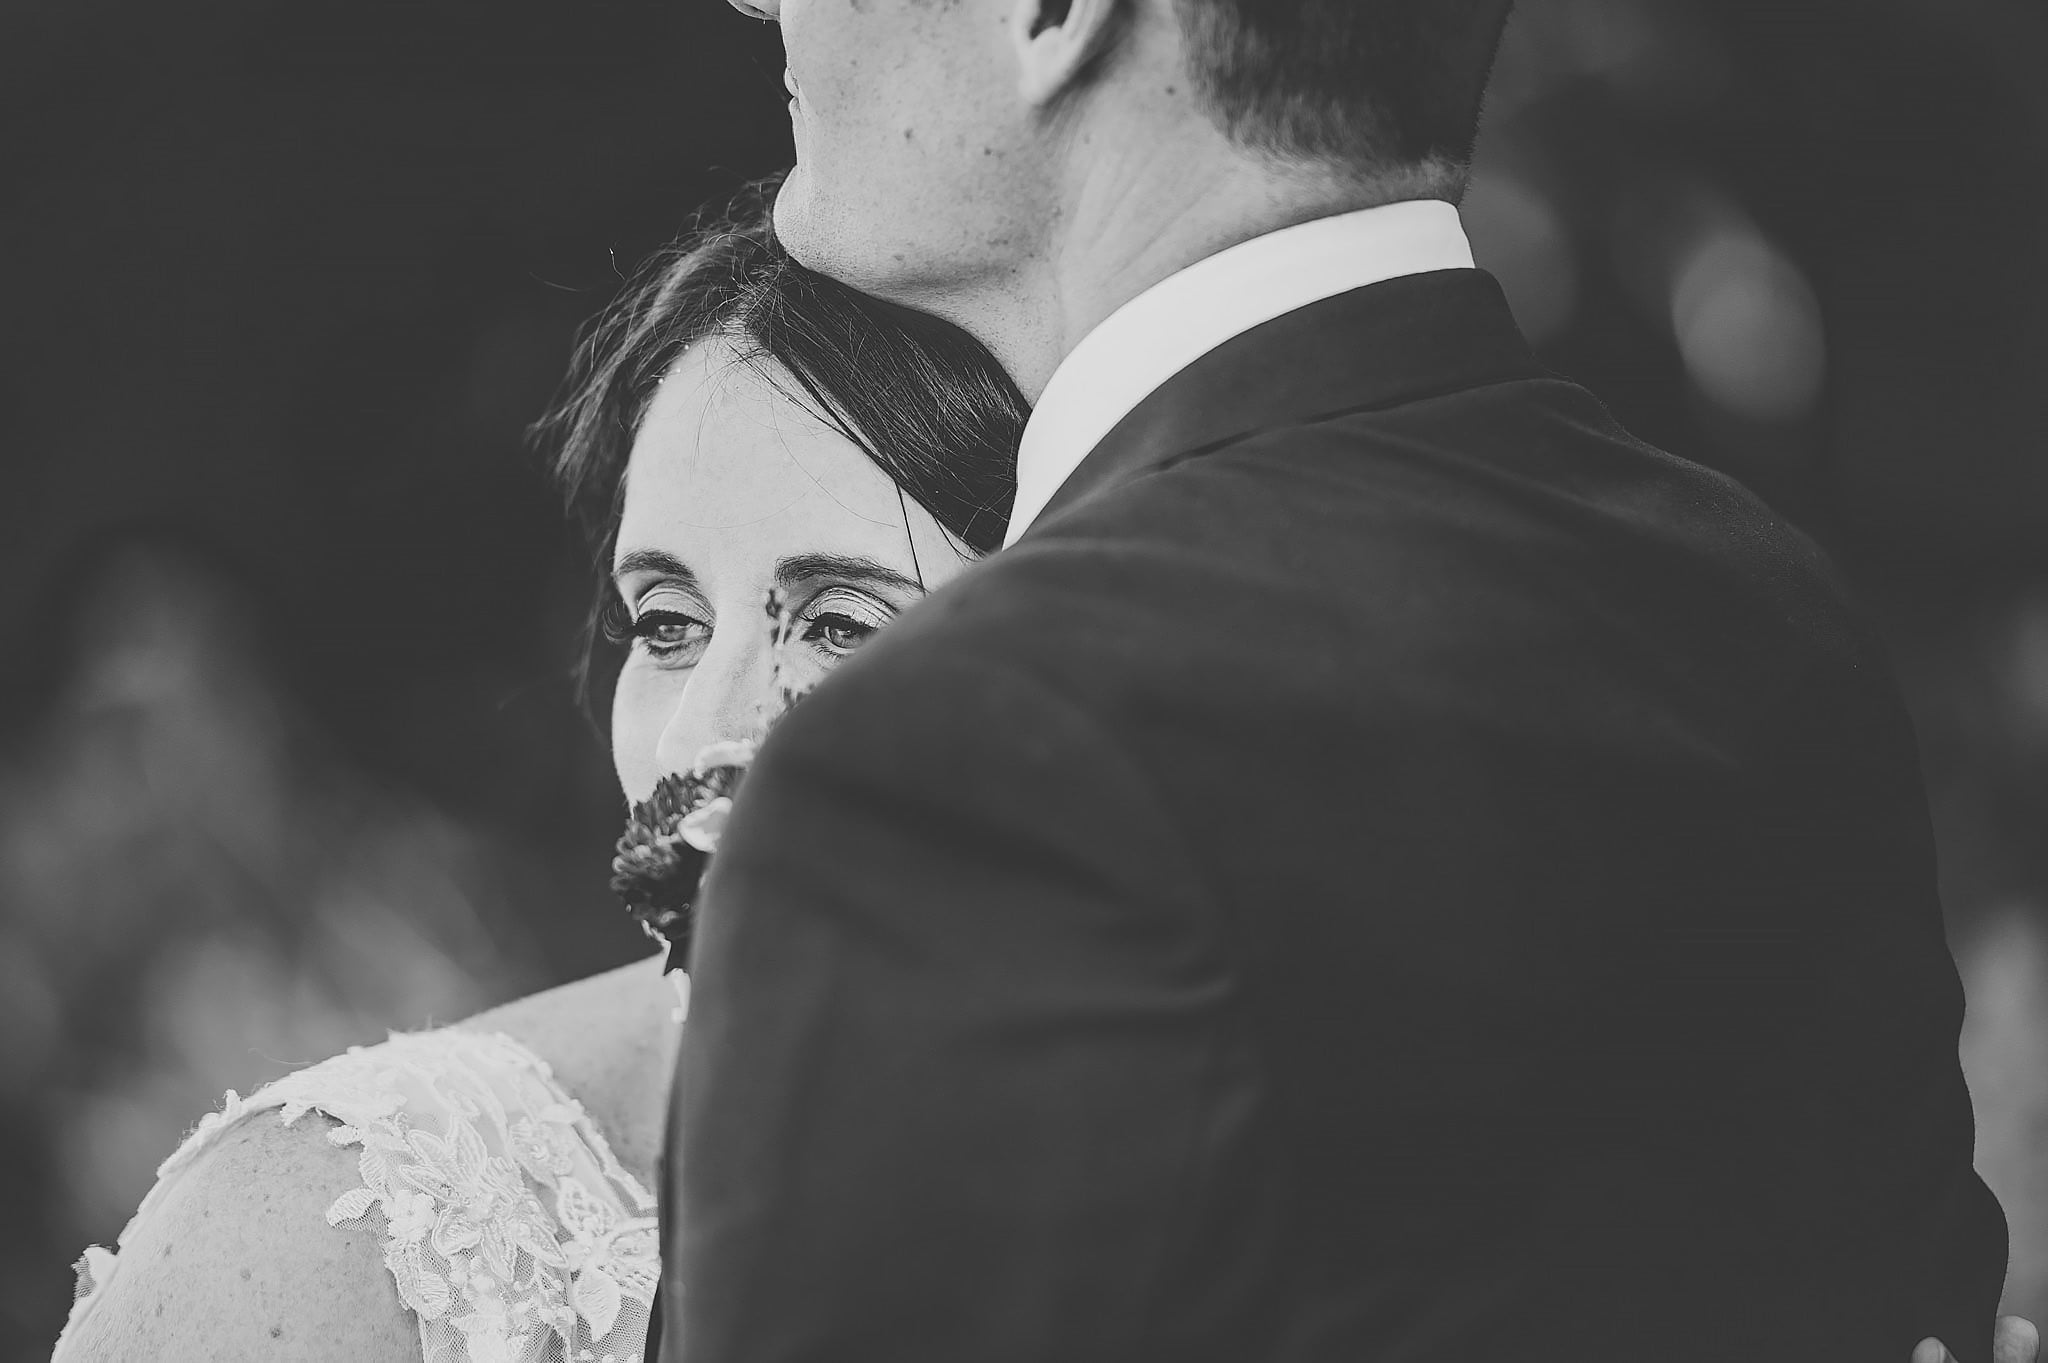 hellens manor wedding 76 - Wedding photography at Hellens Manor in Herefordshire, West Midlands | Shelley + Ian